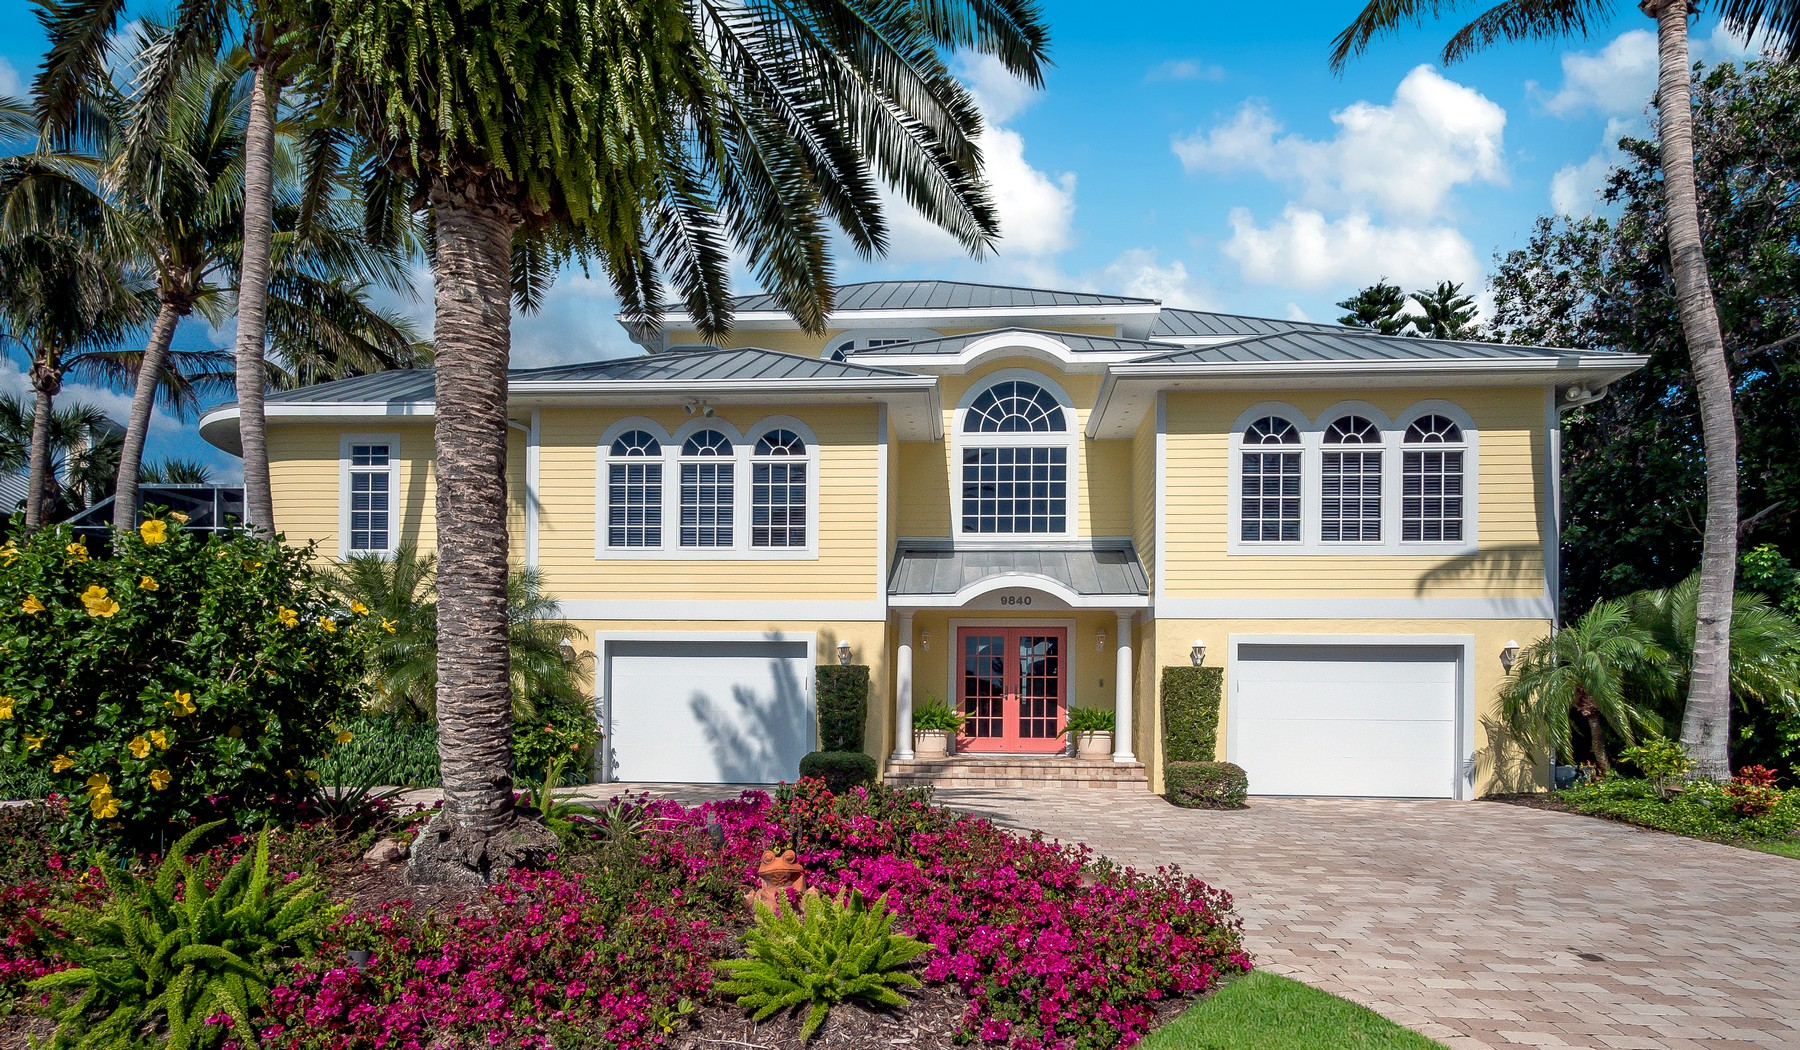 Single Family Home for Sale at 9840 NW Gasparilla Pass Blvd. Boca Grande, Florida, 33921 United States